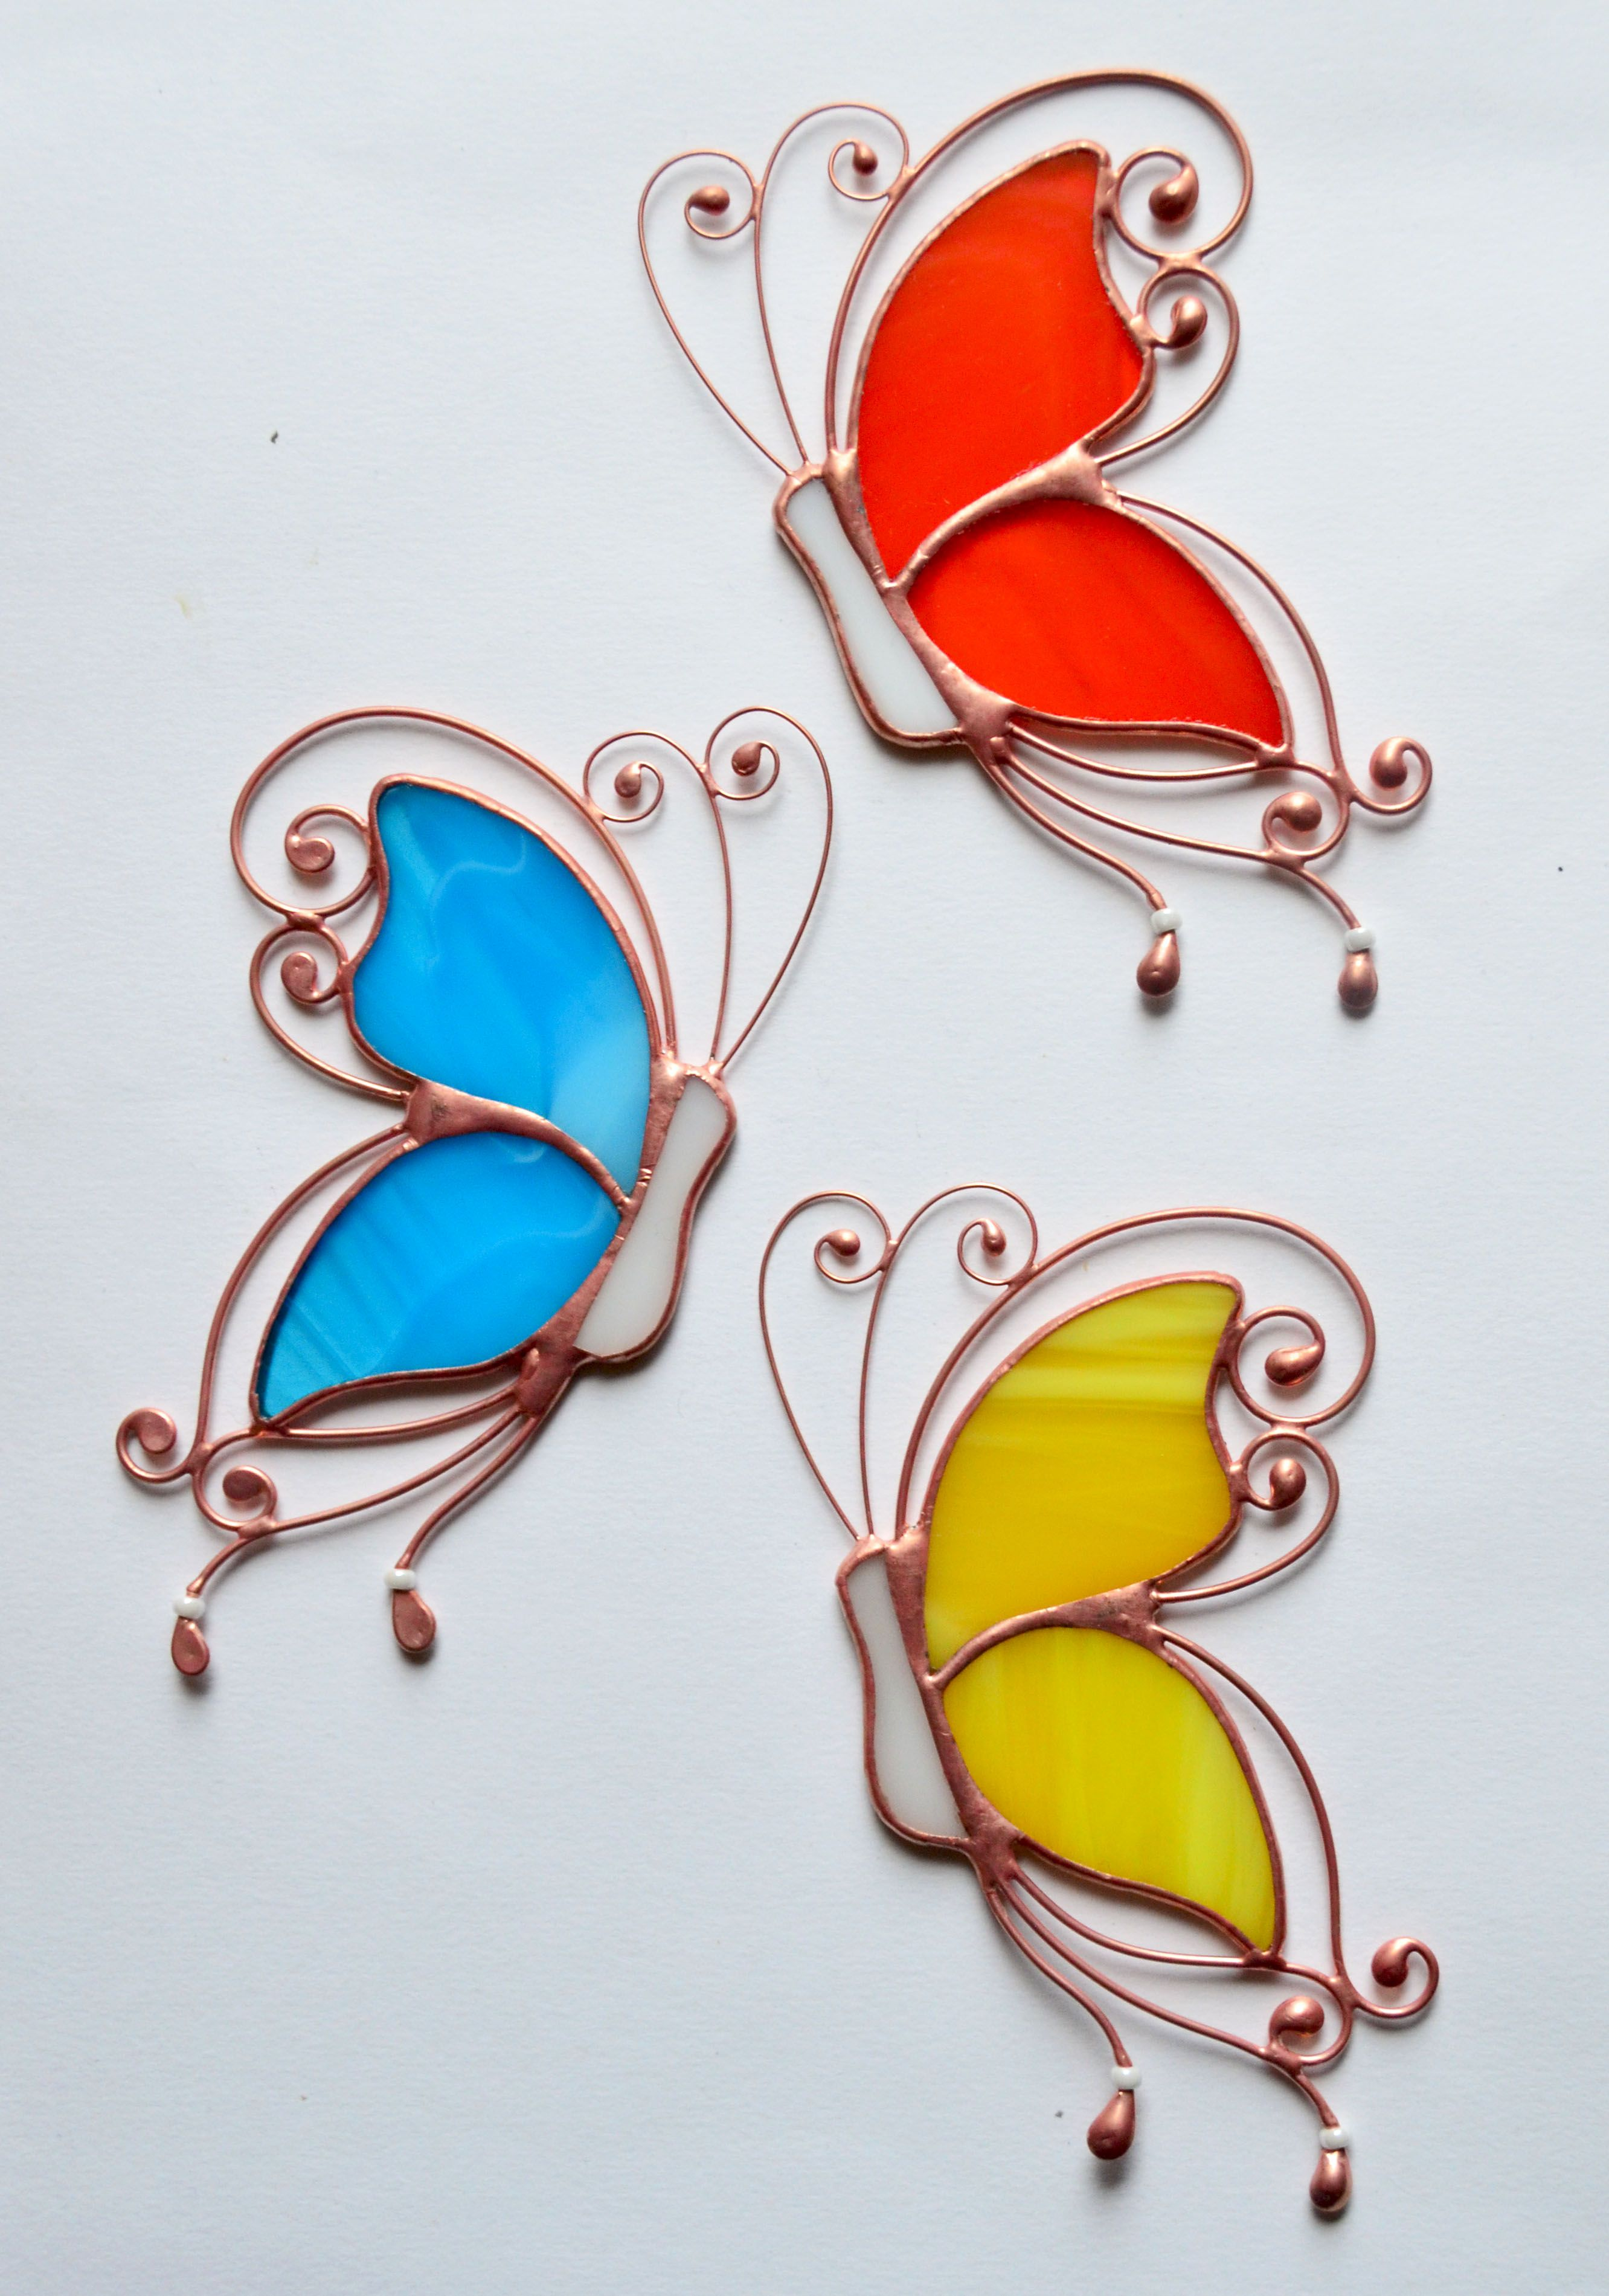 Stained glass butterfly suncatcher, window hanging decoration